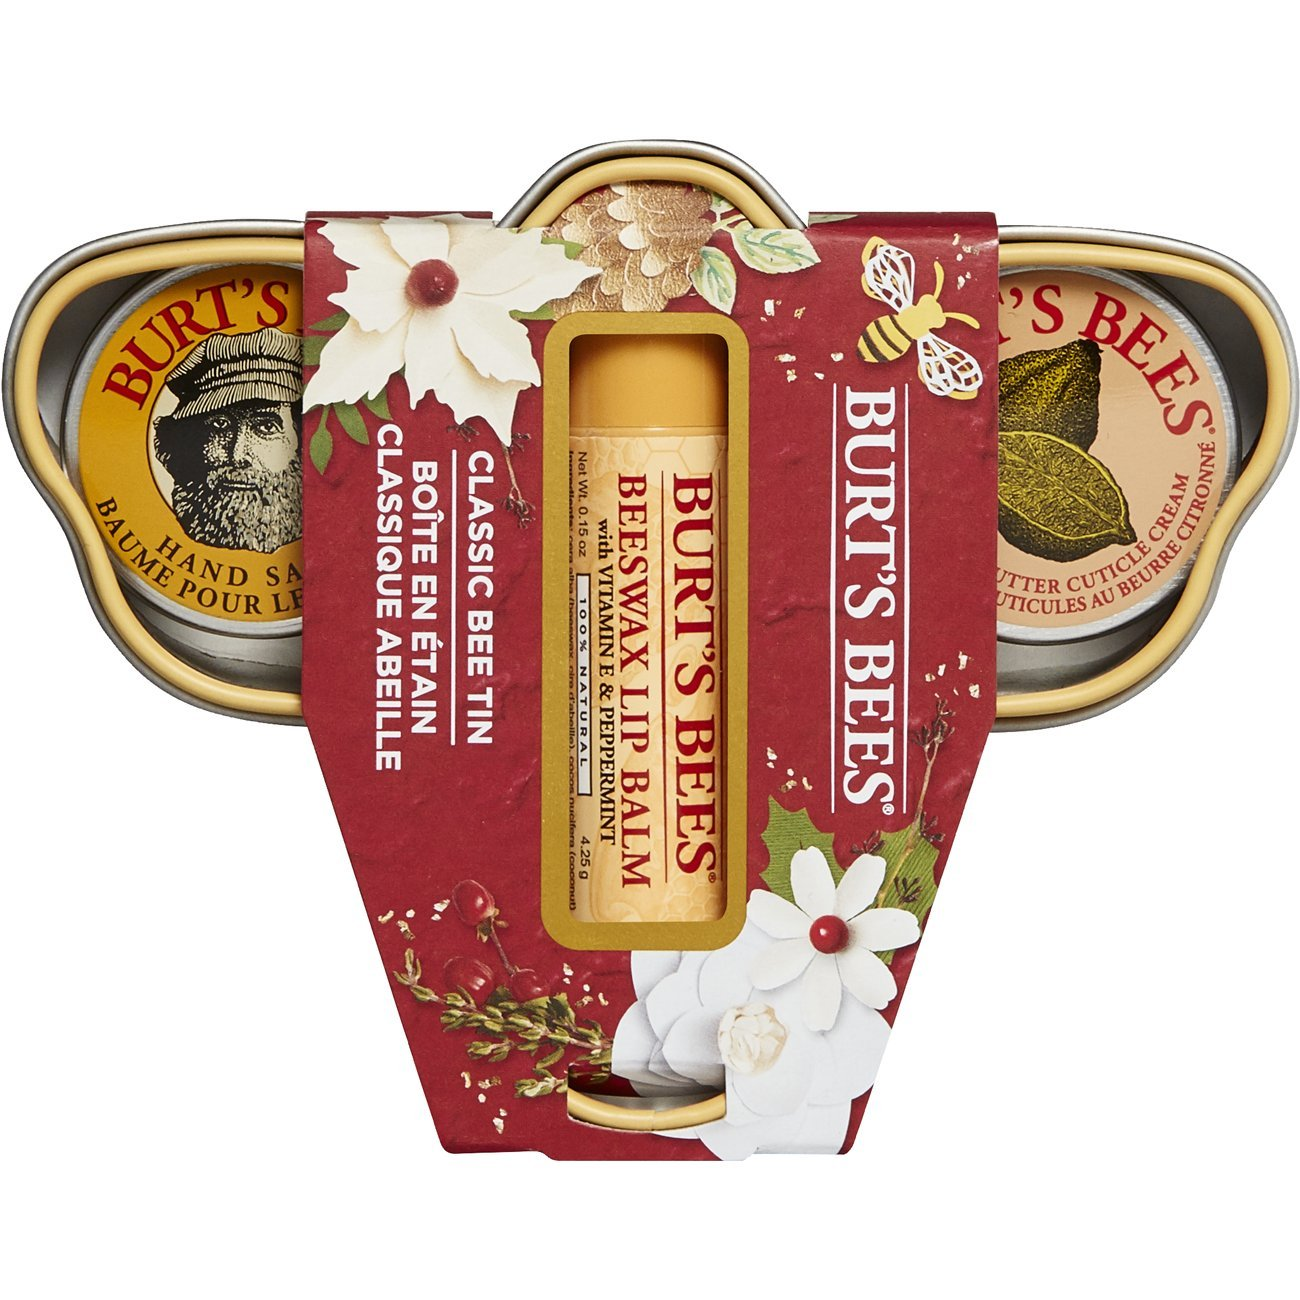 Burt's Bees Classic Bee Tin Holiday Gift Set, 3 Lip & Hand Products in Gift Box - Cuticle Cream, Hand Salve and Lip Balm